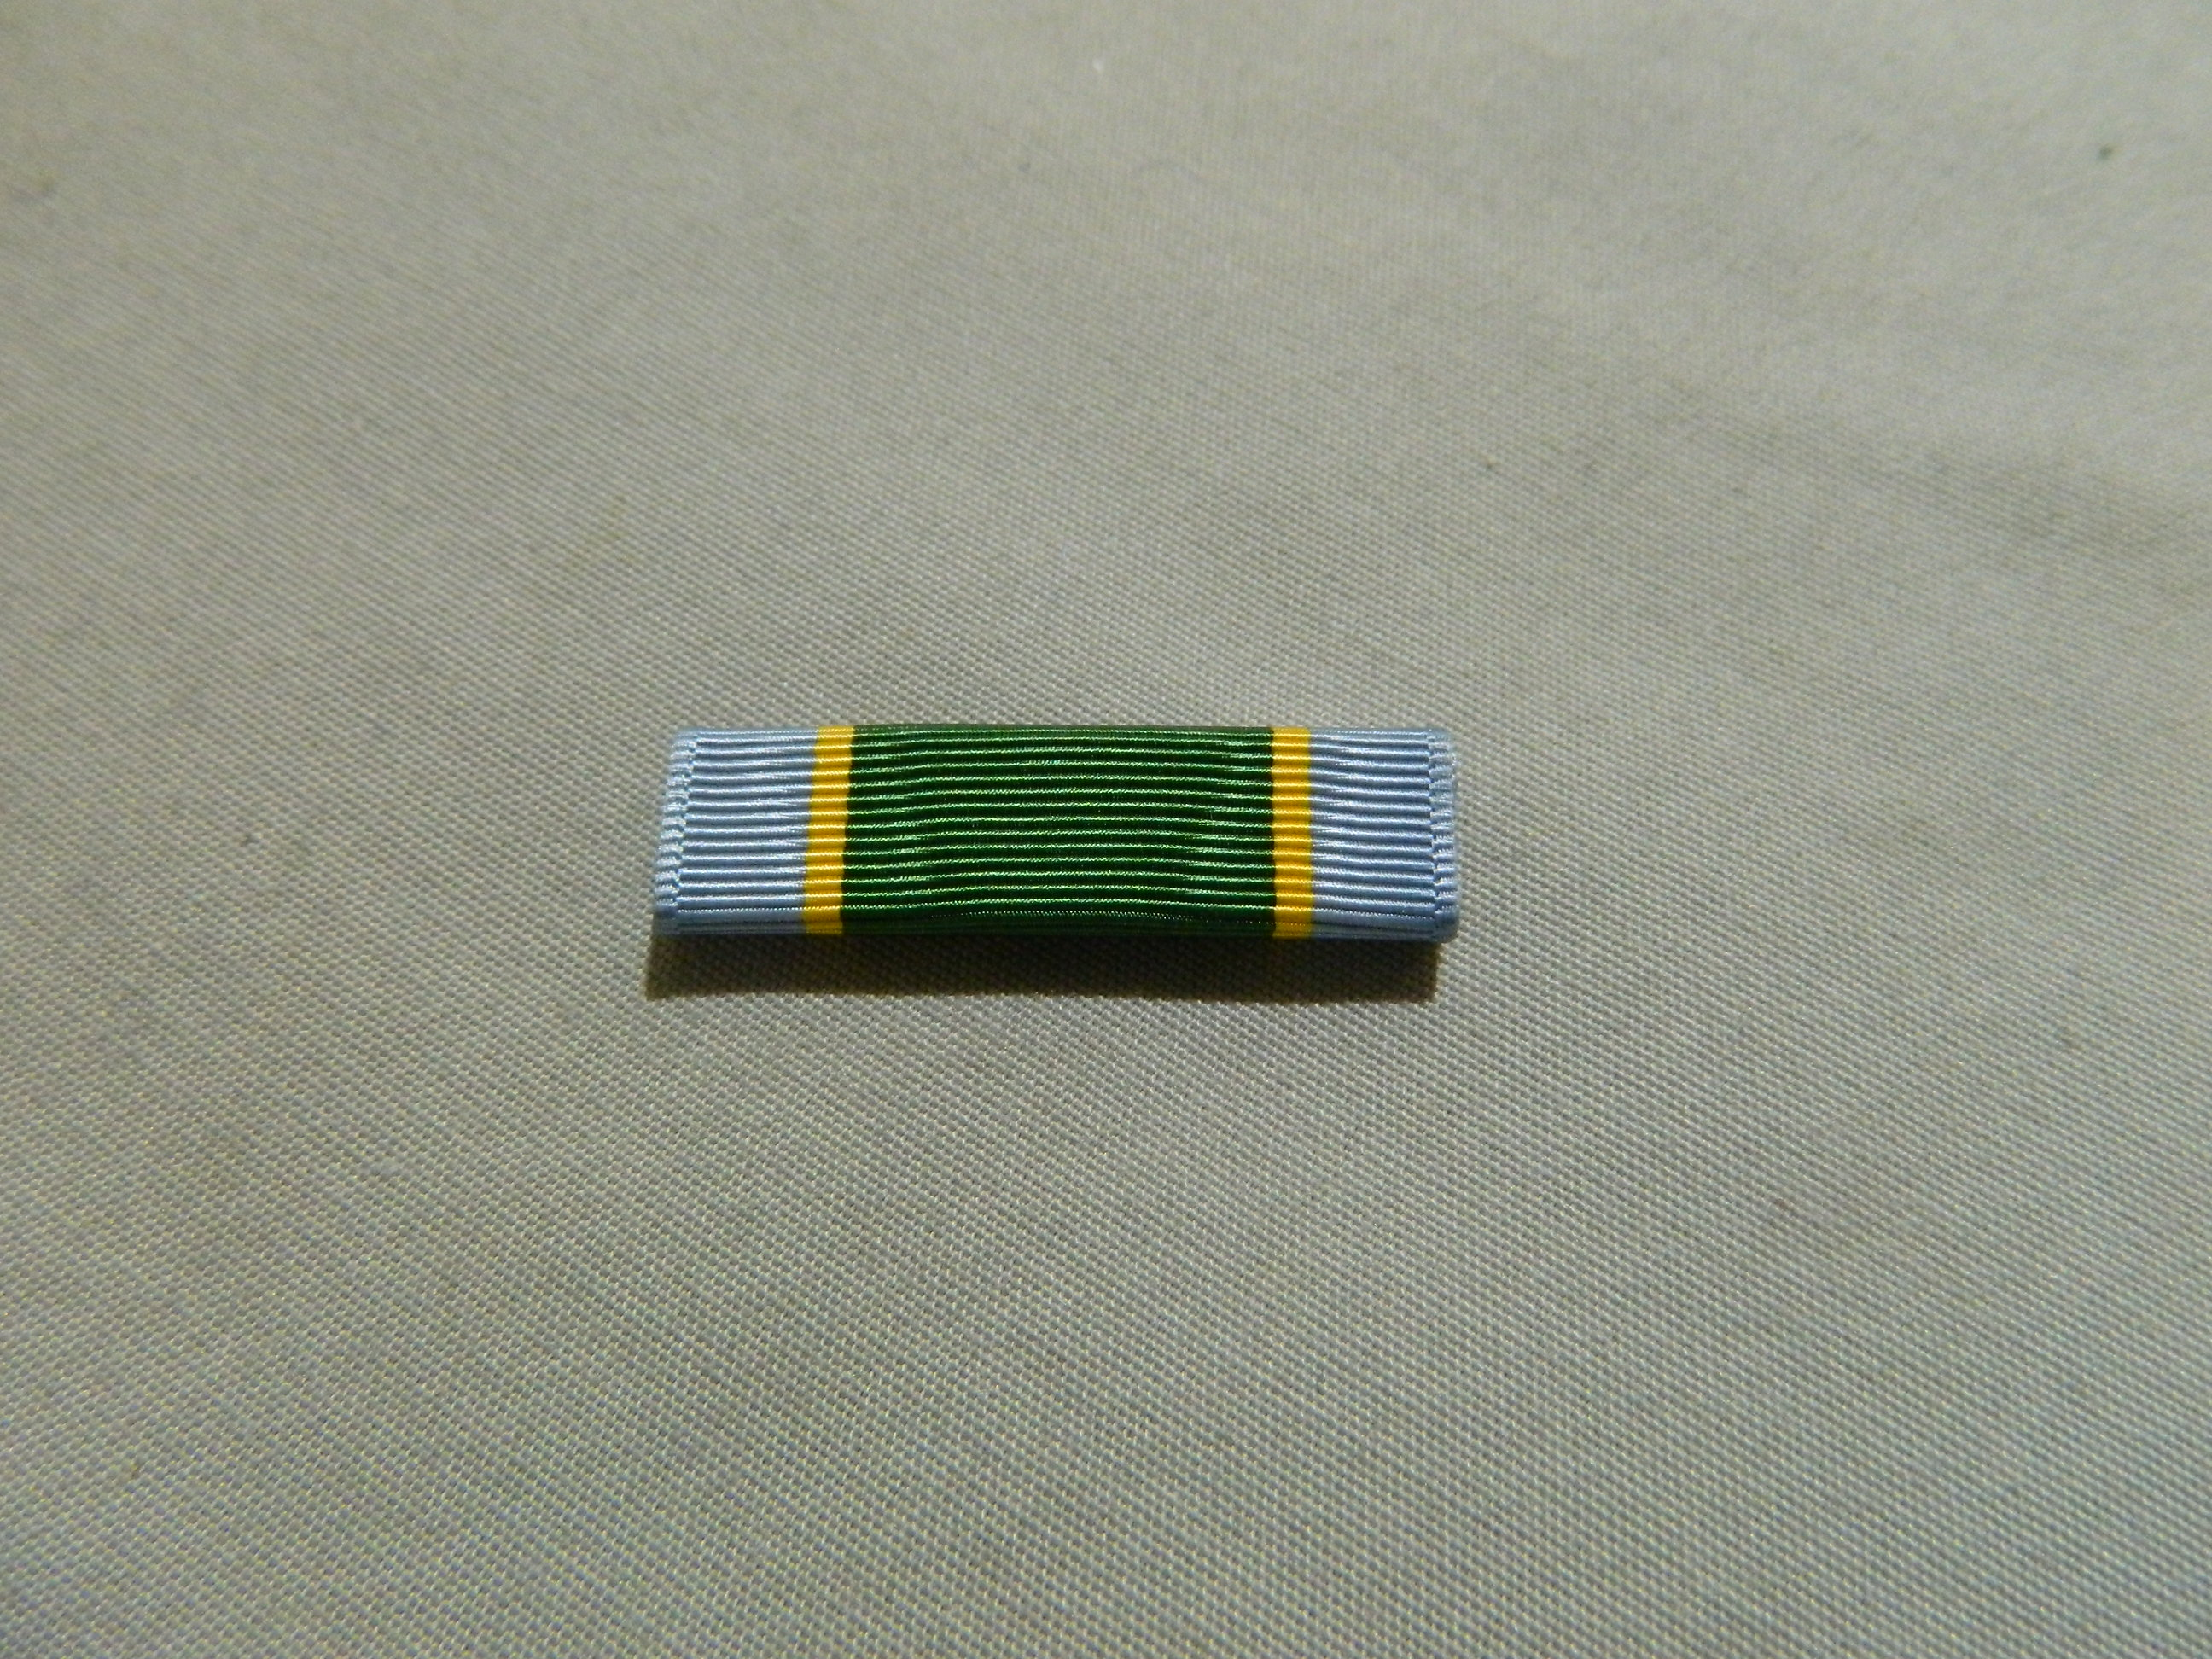 Ribbon: USAF Small Arms Expert Marksmanship